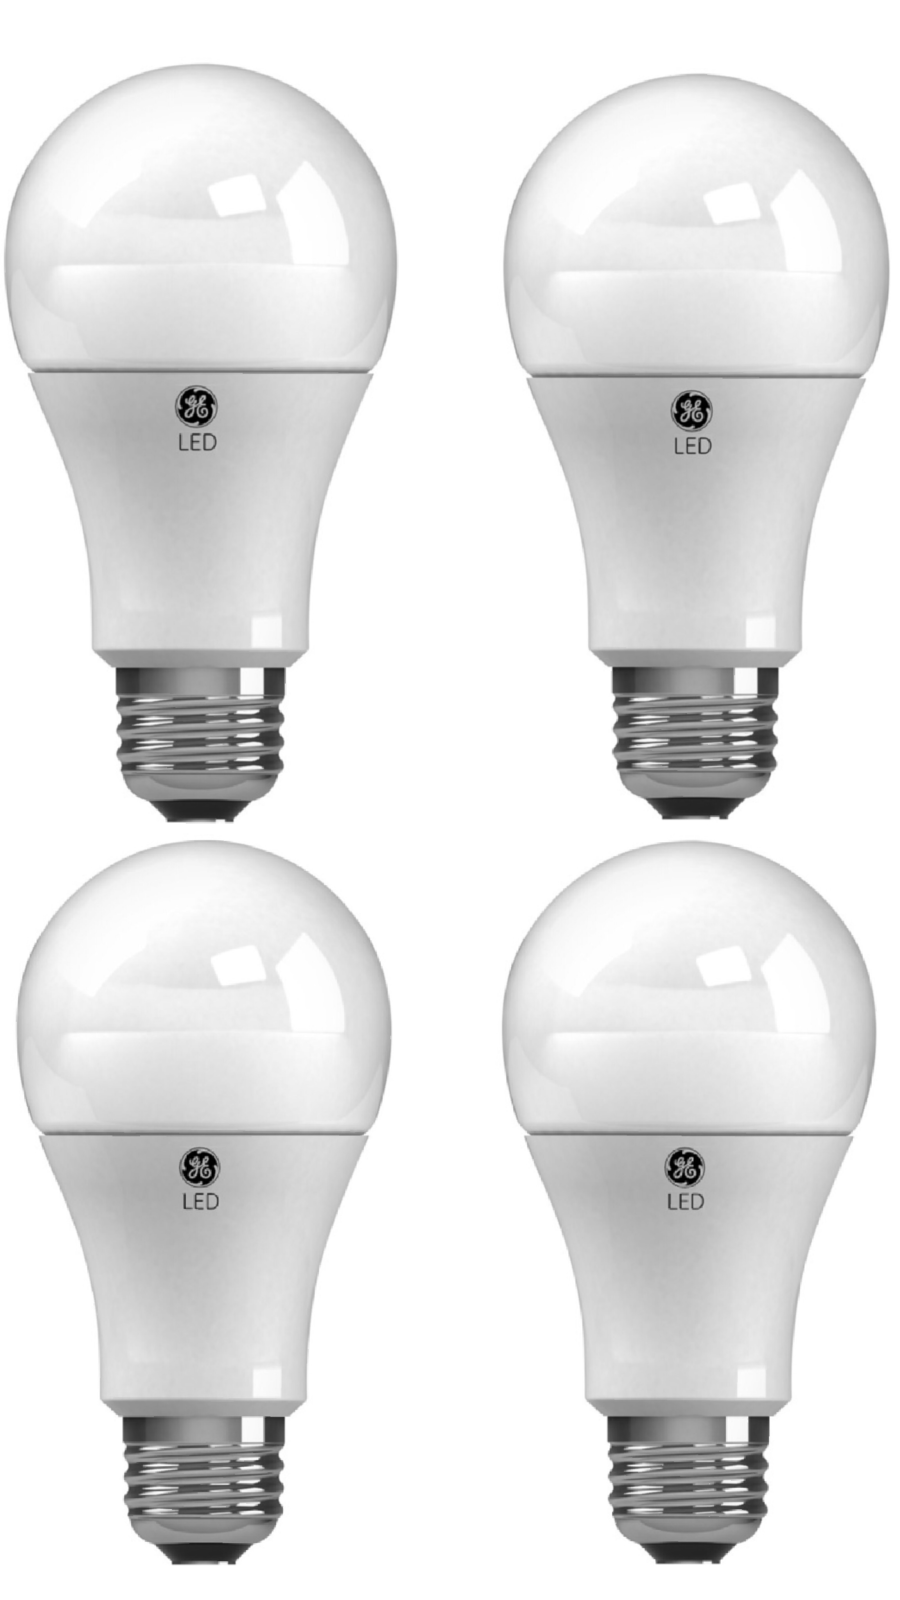 General Electric 25w 4pk Long Life Incandescent Chandelier Light Bulb White